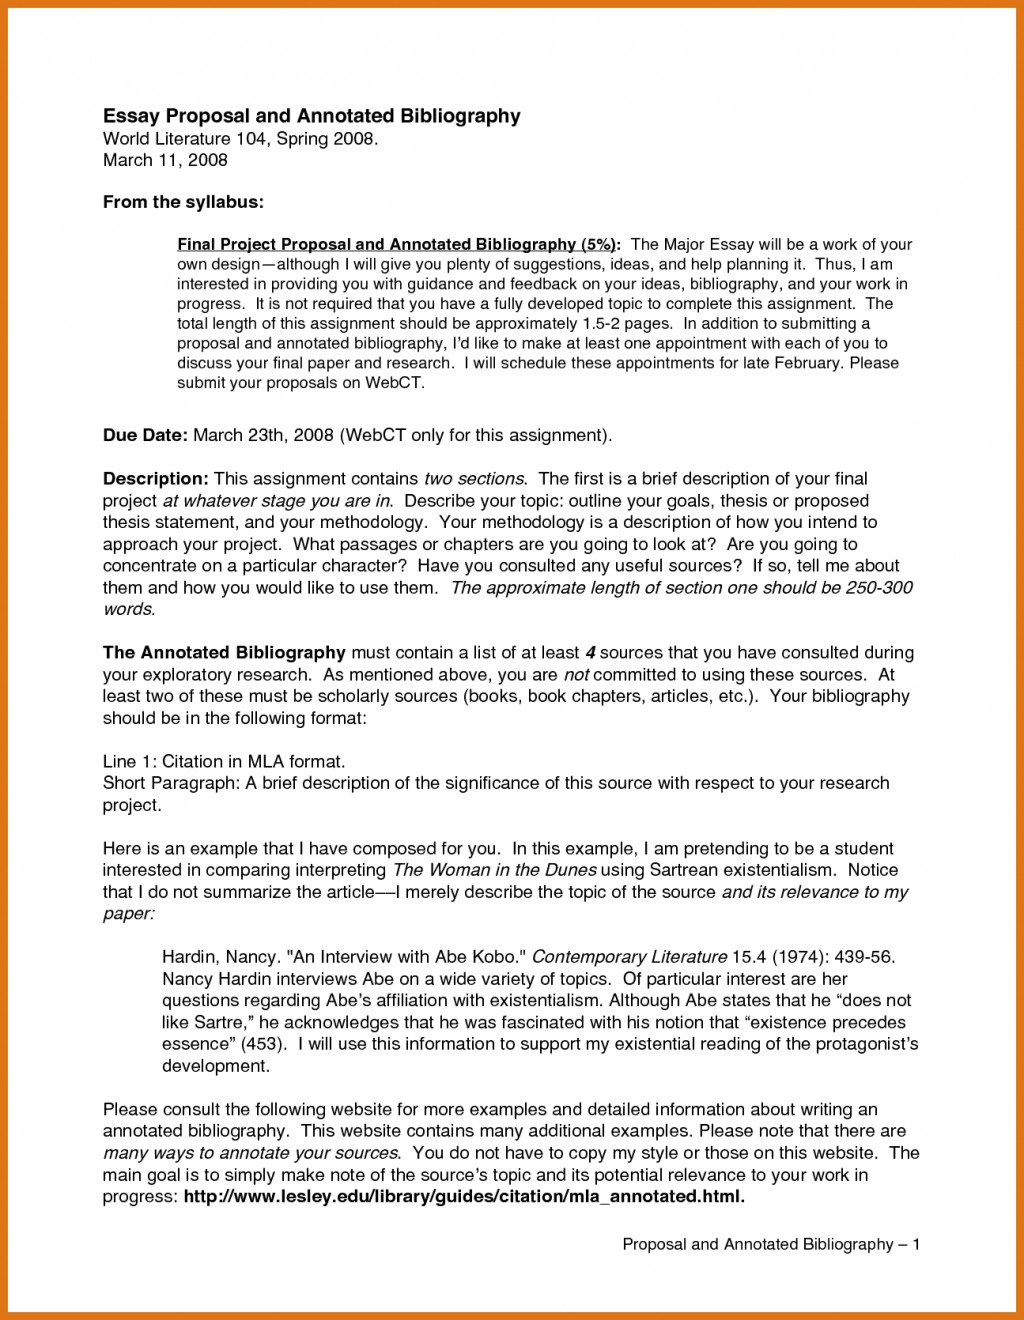 025 Essay Example How To Cite Articles In Bunch Ideas Of Chicago Style Essays Citation Sources Mlaormat Excellent Bibliography Sampleor Research Paper Singular References Apa Article Name A Newspaper Your Large